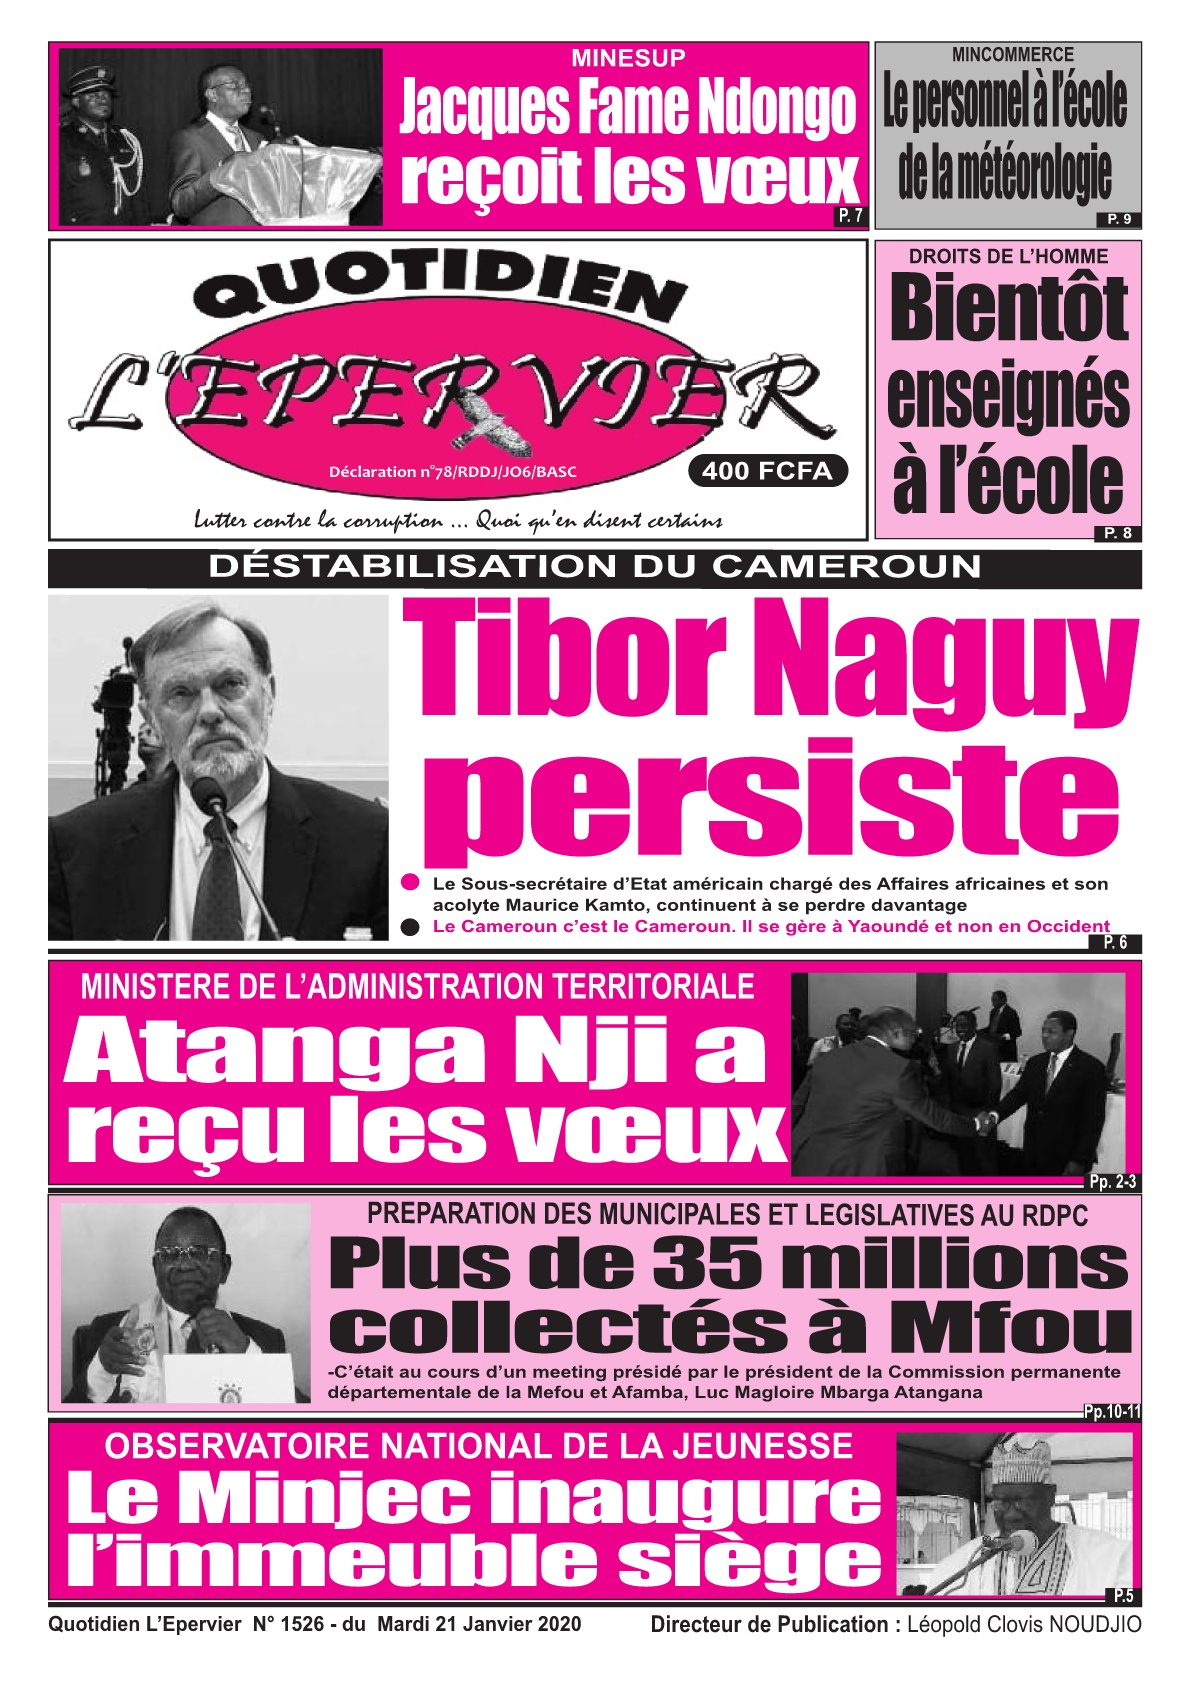 L'Epervier - 21/01/2020